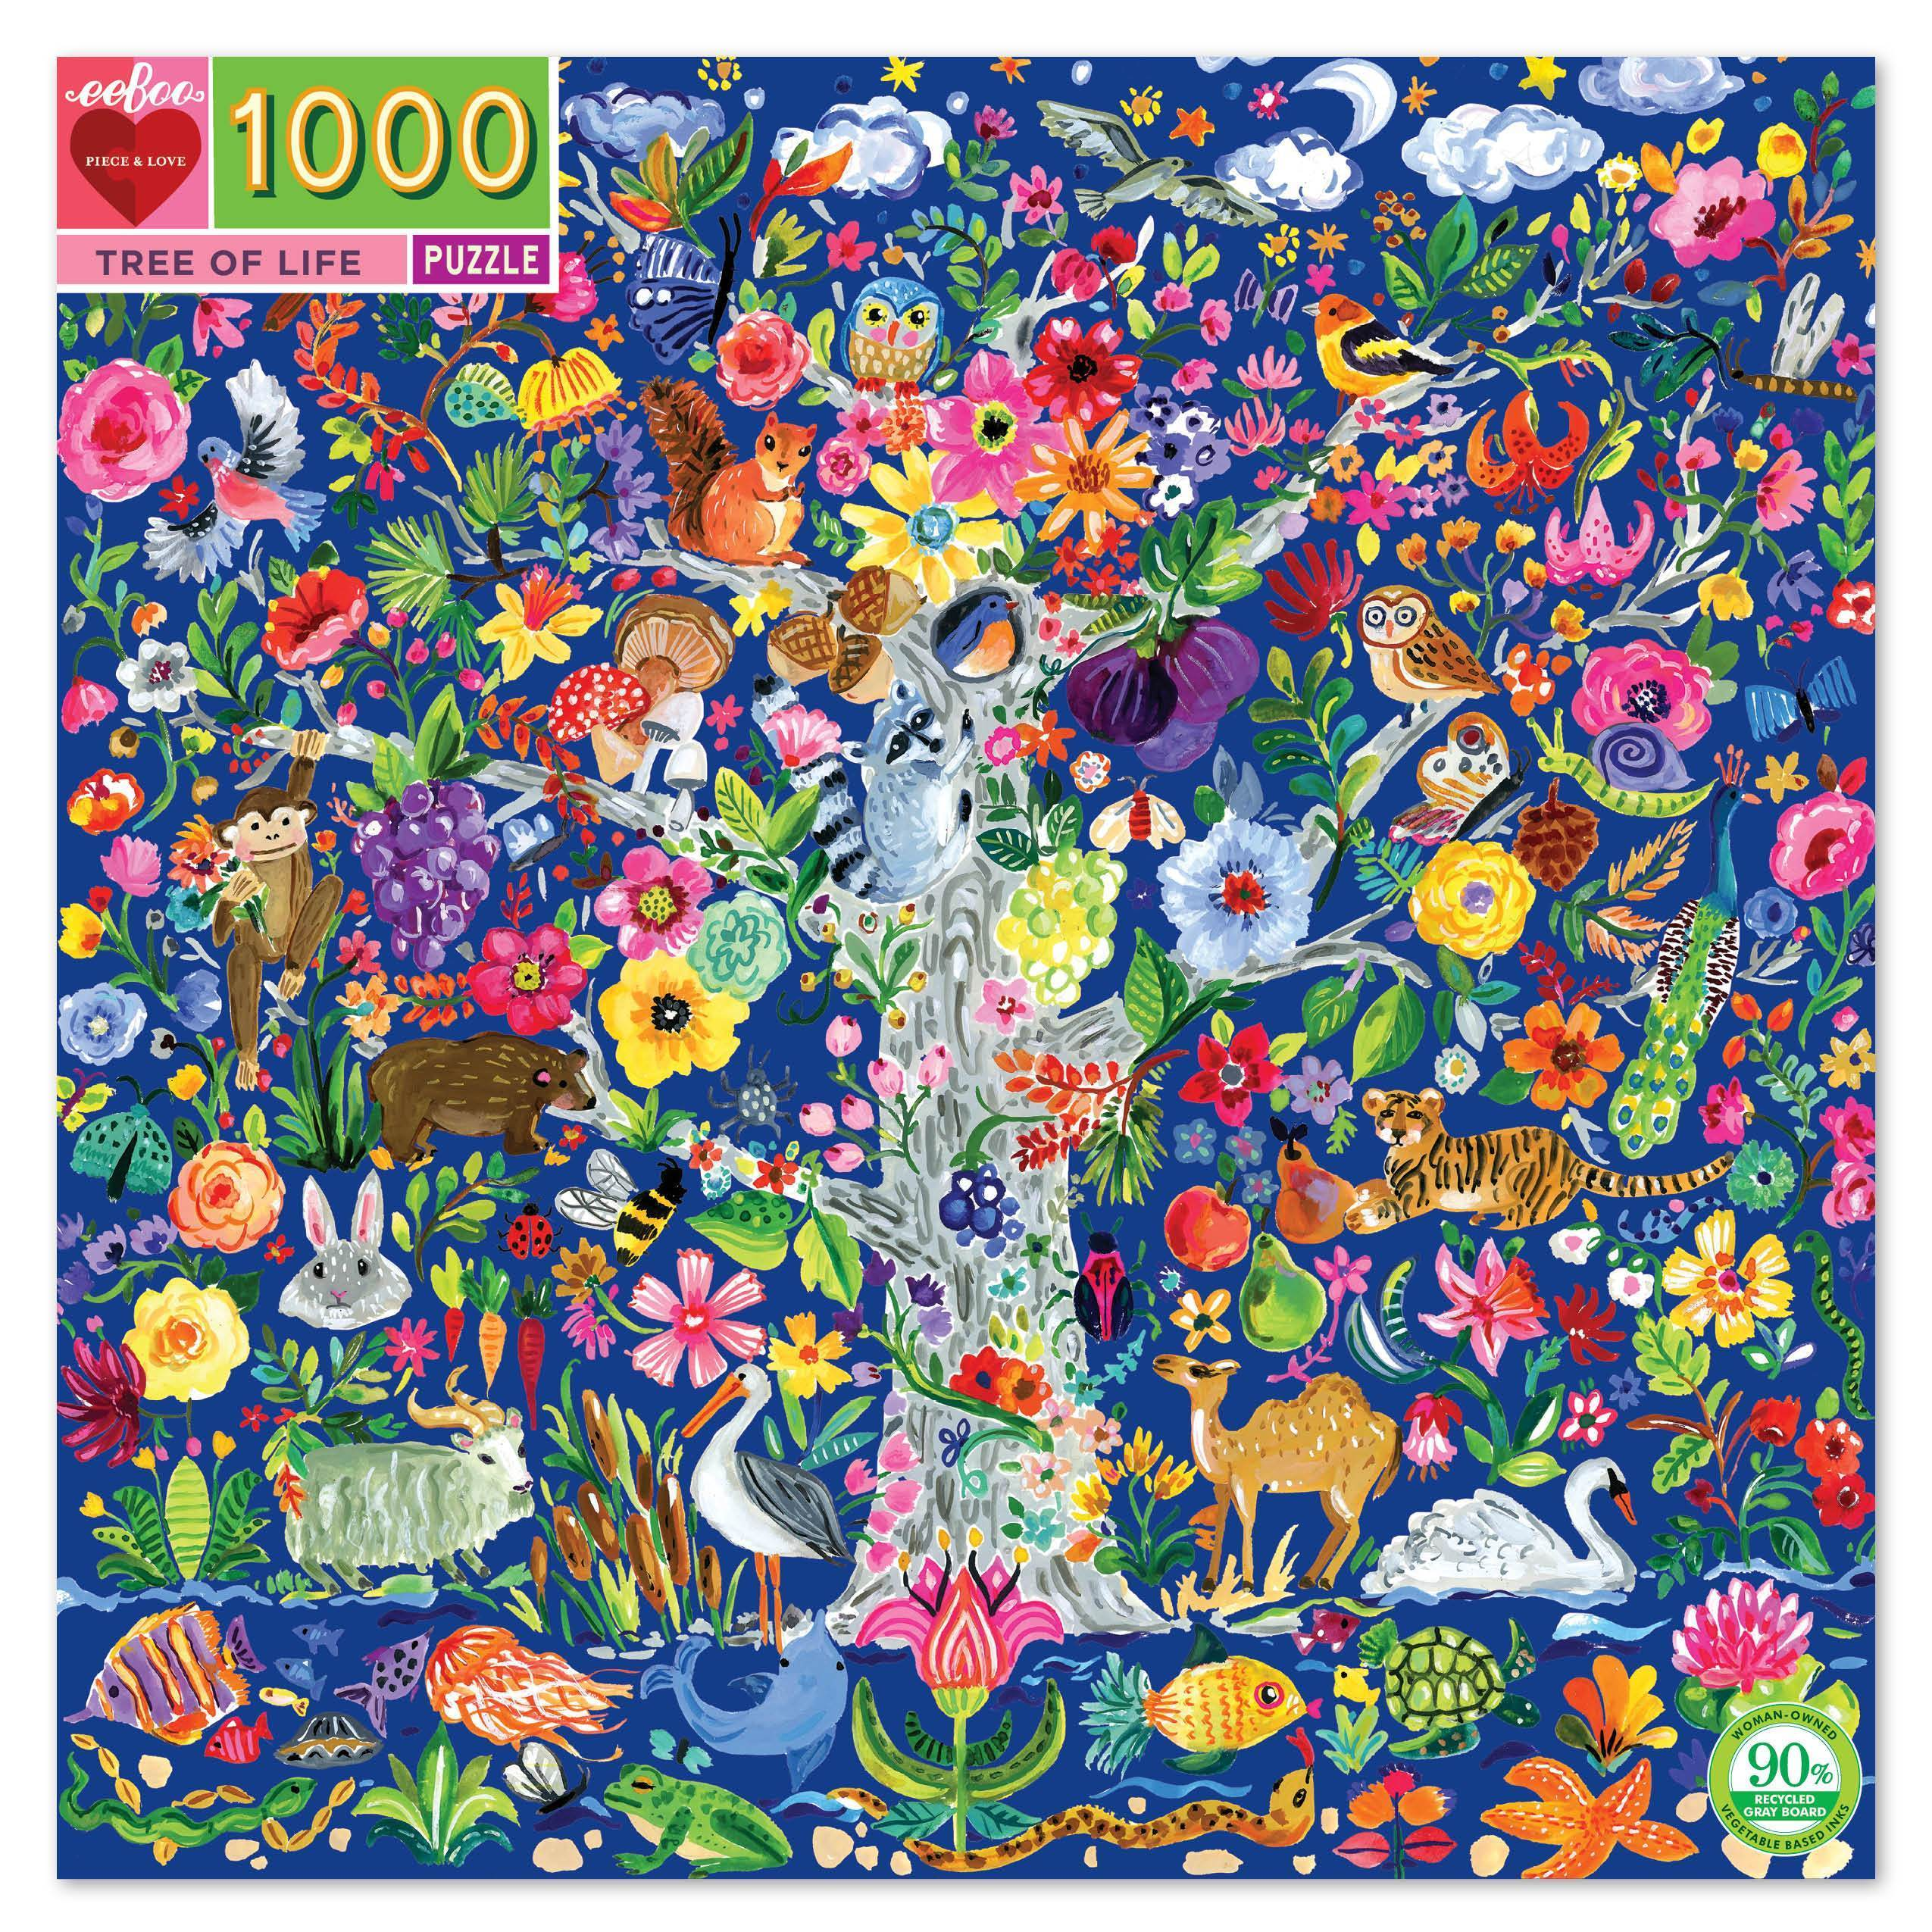 1000 PIECES LARGE PUZZLE GAME-Updated Daily